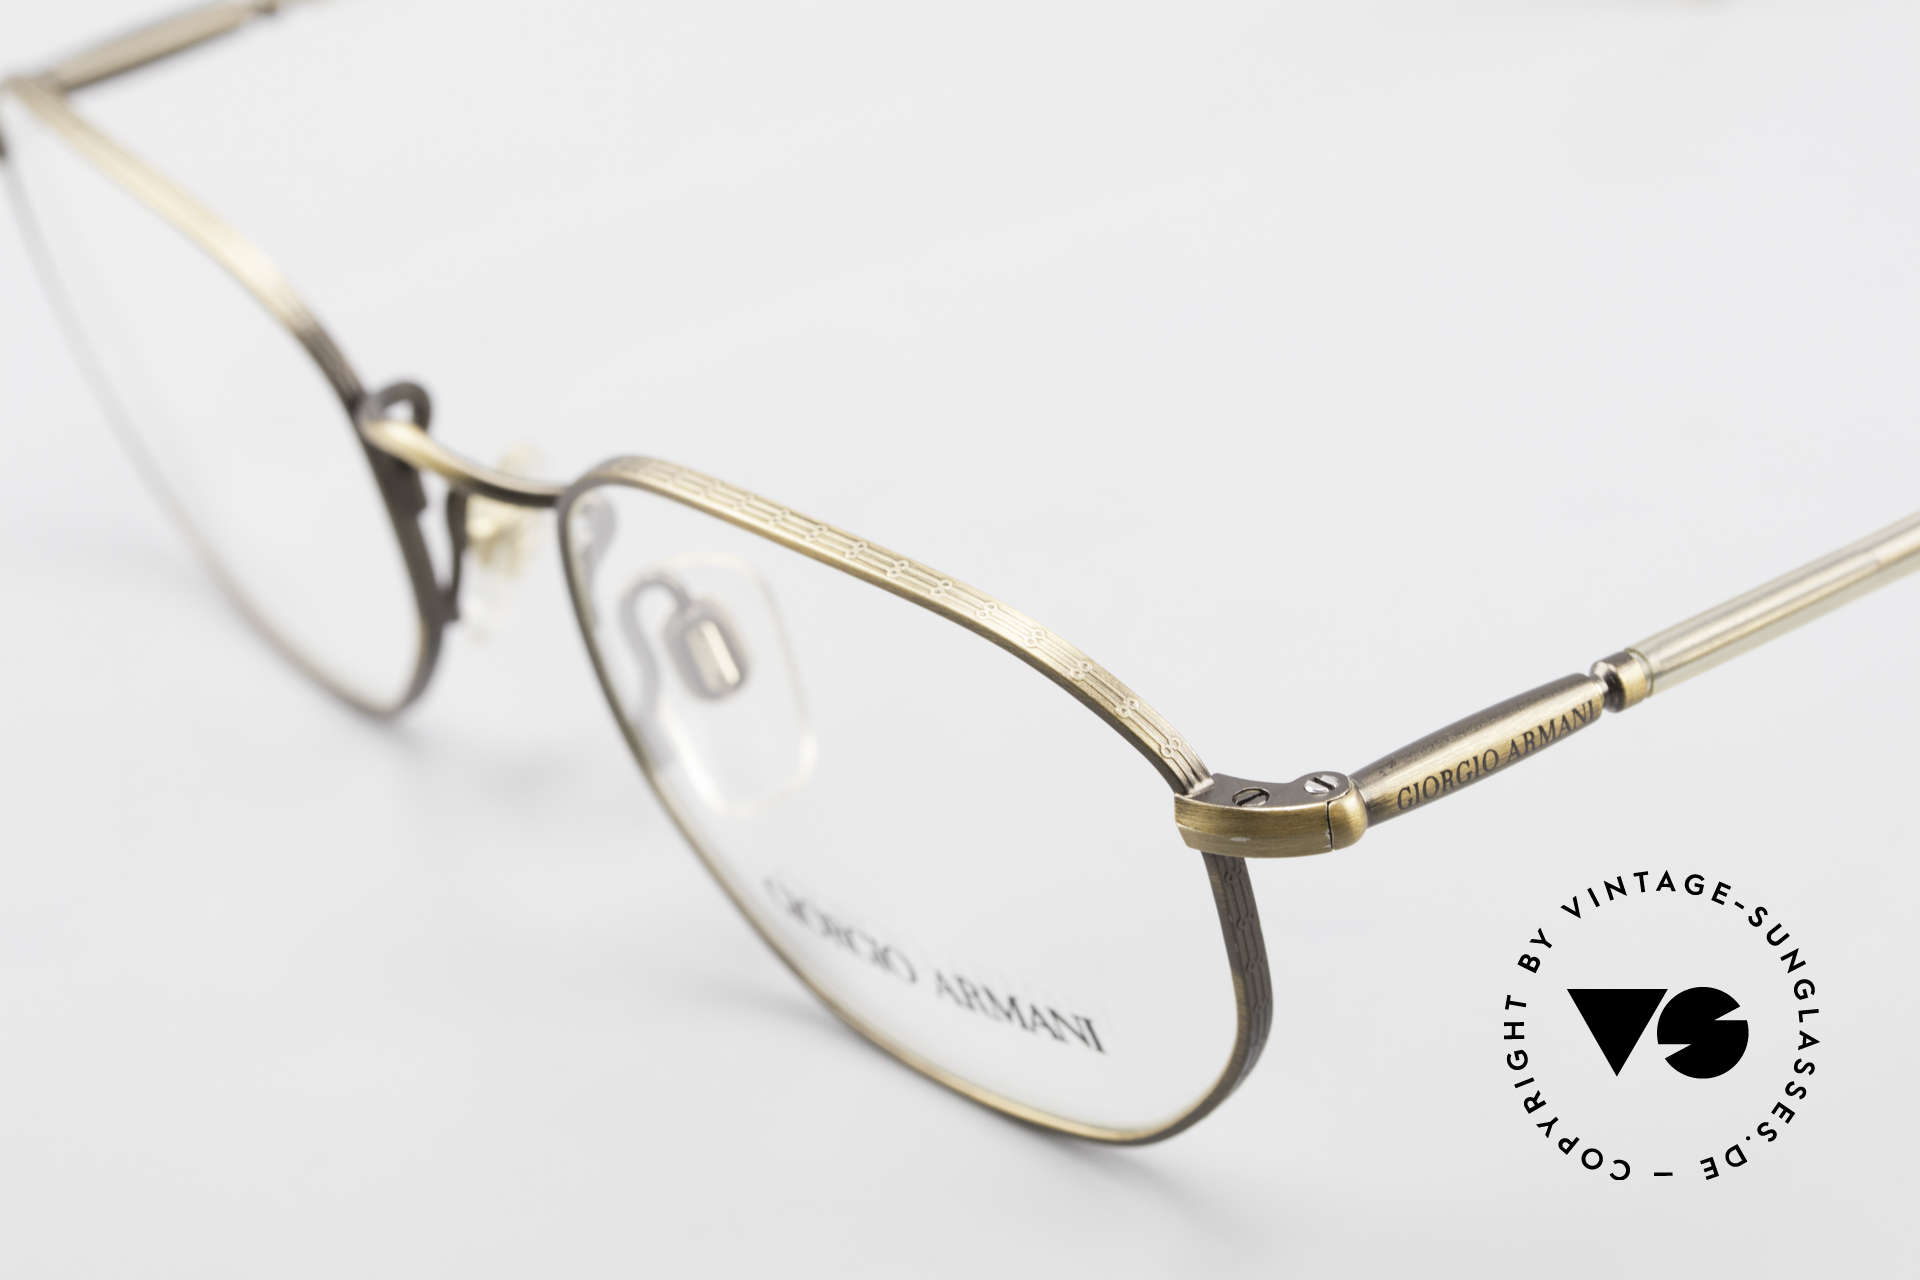 Giorgio Armani 187 Classic Men's Eyeglasses 90's, never worn (like all our vintage Giorgio Armani specs), Made for Men